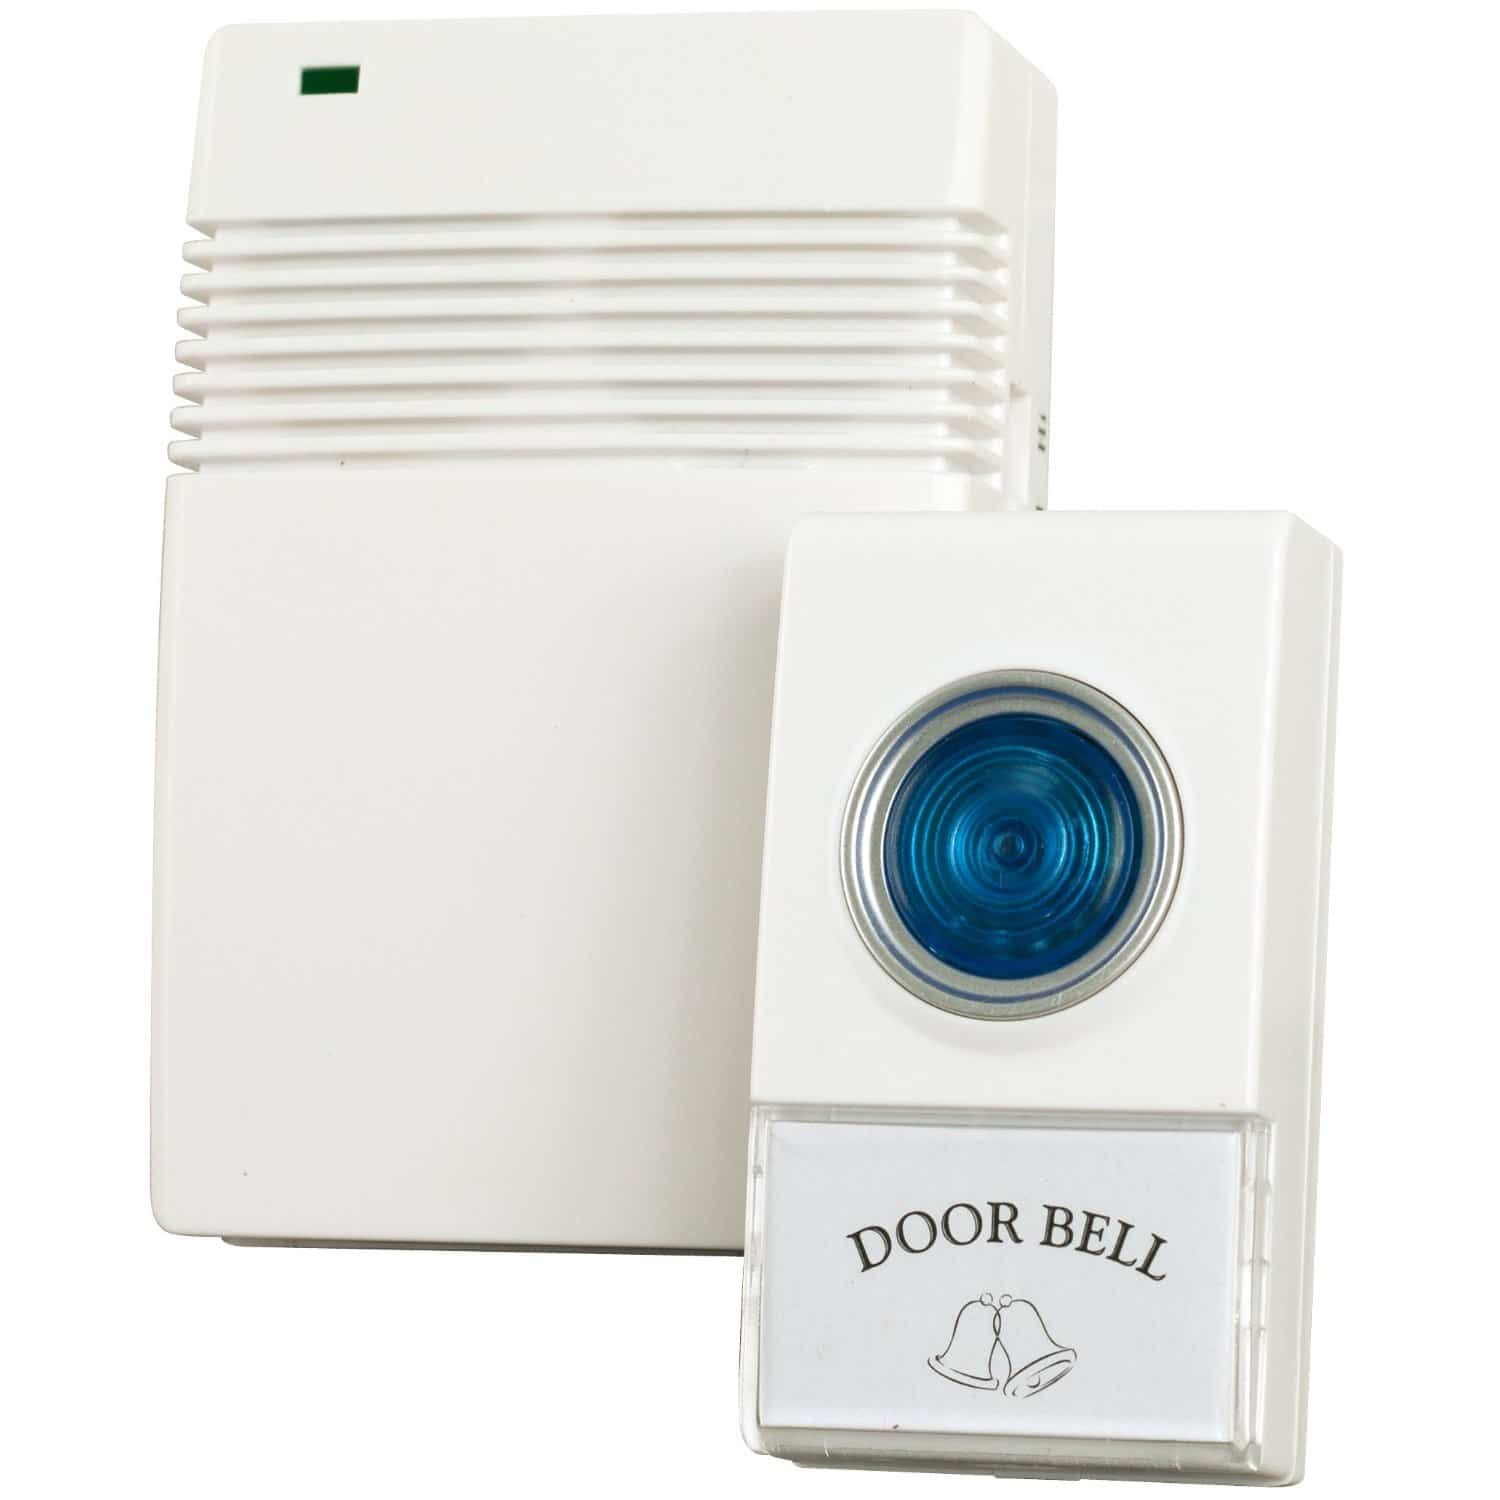 Voye 72-20488 Wireless Remote Control Doorbell